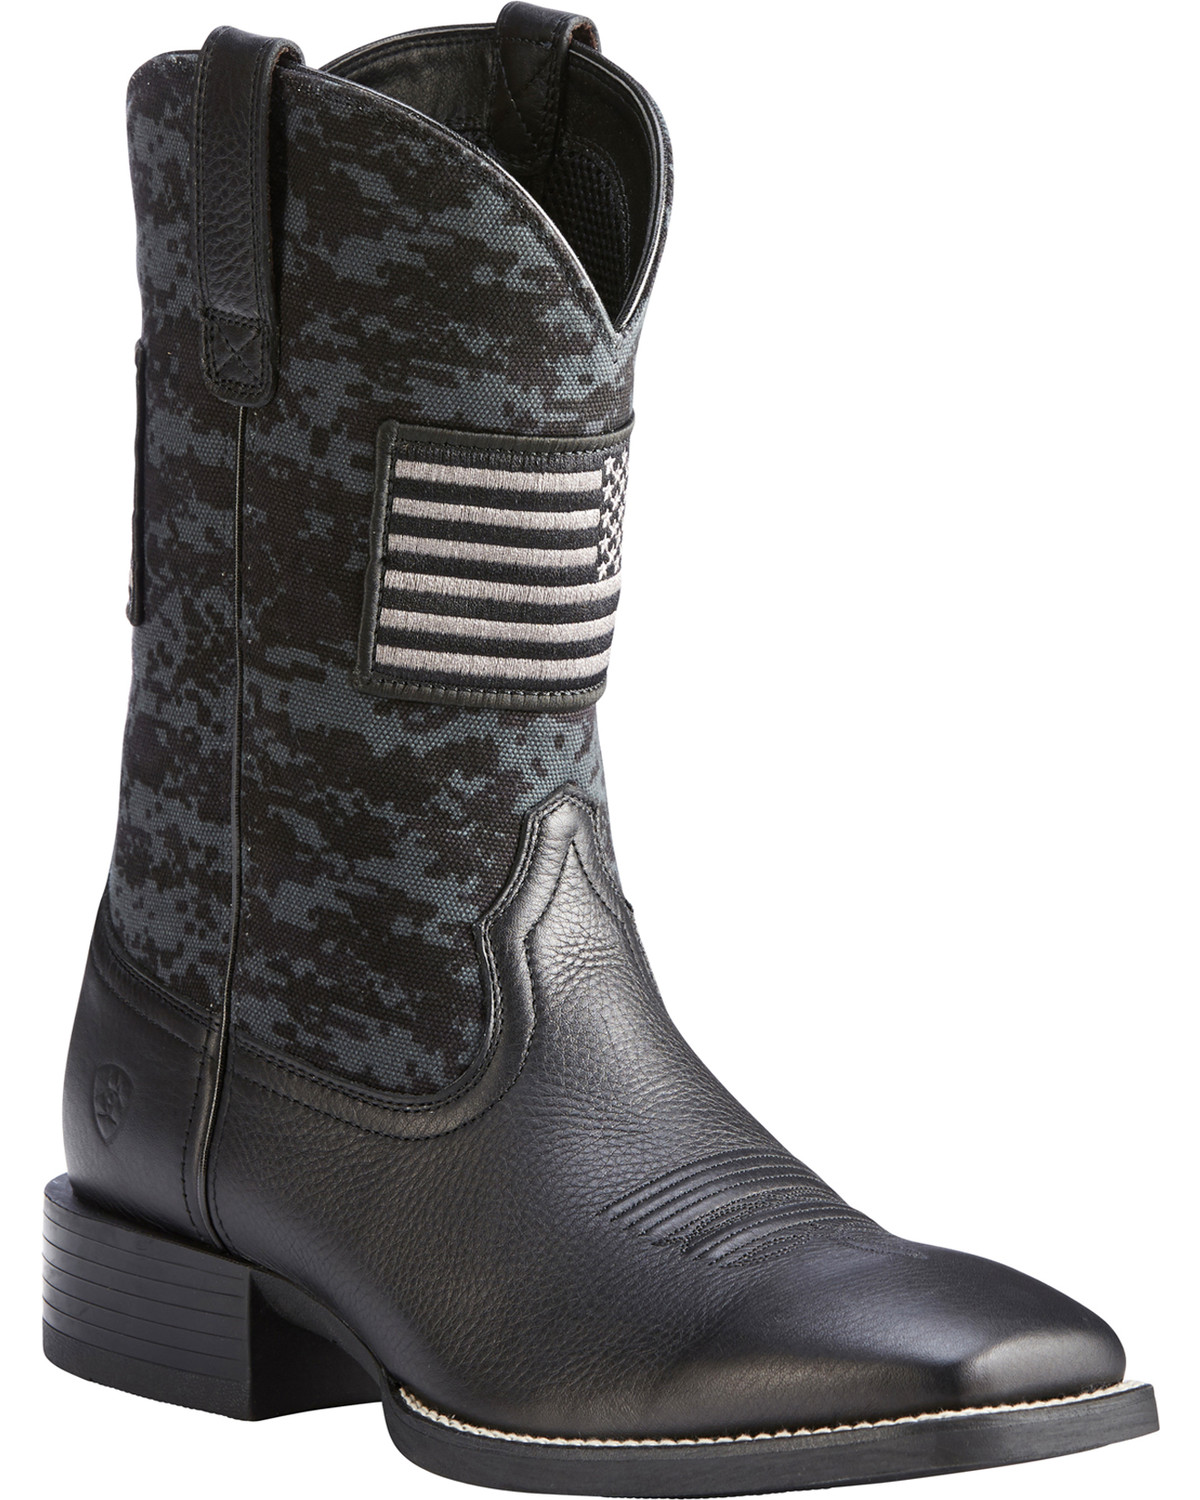 89a80152eb81b Zoomed Image Ariat Men's Black Camo Sport Patriot Western Boots - Square  Toe , Black, hi-